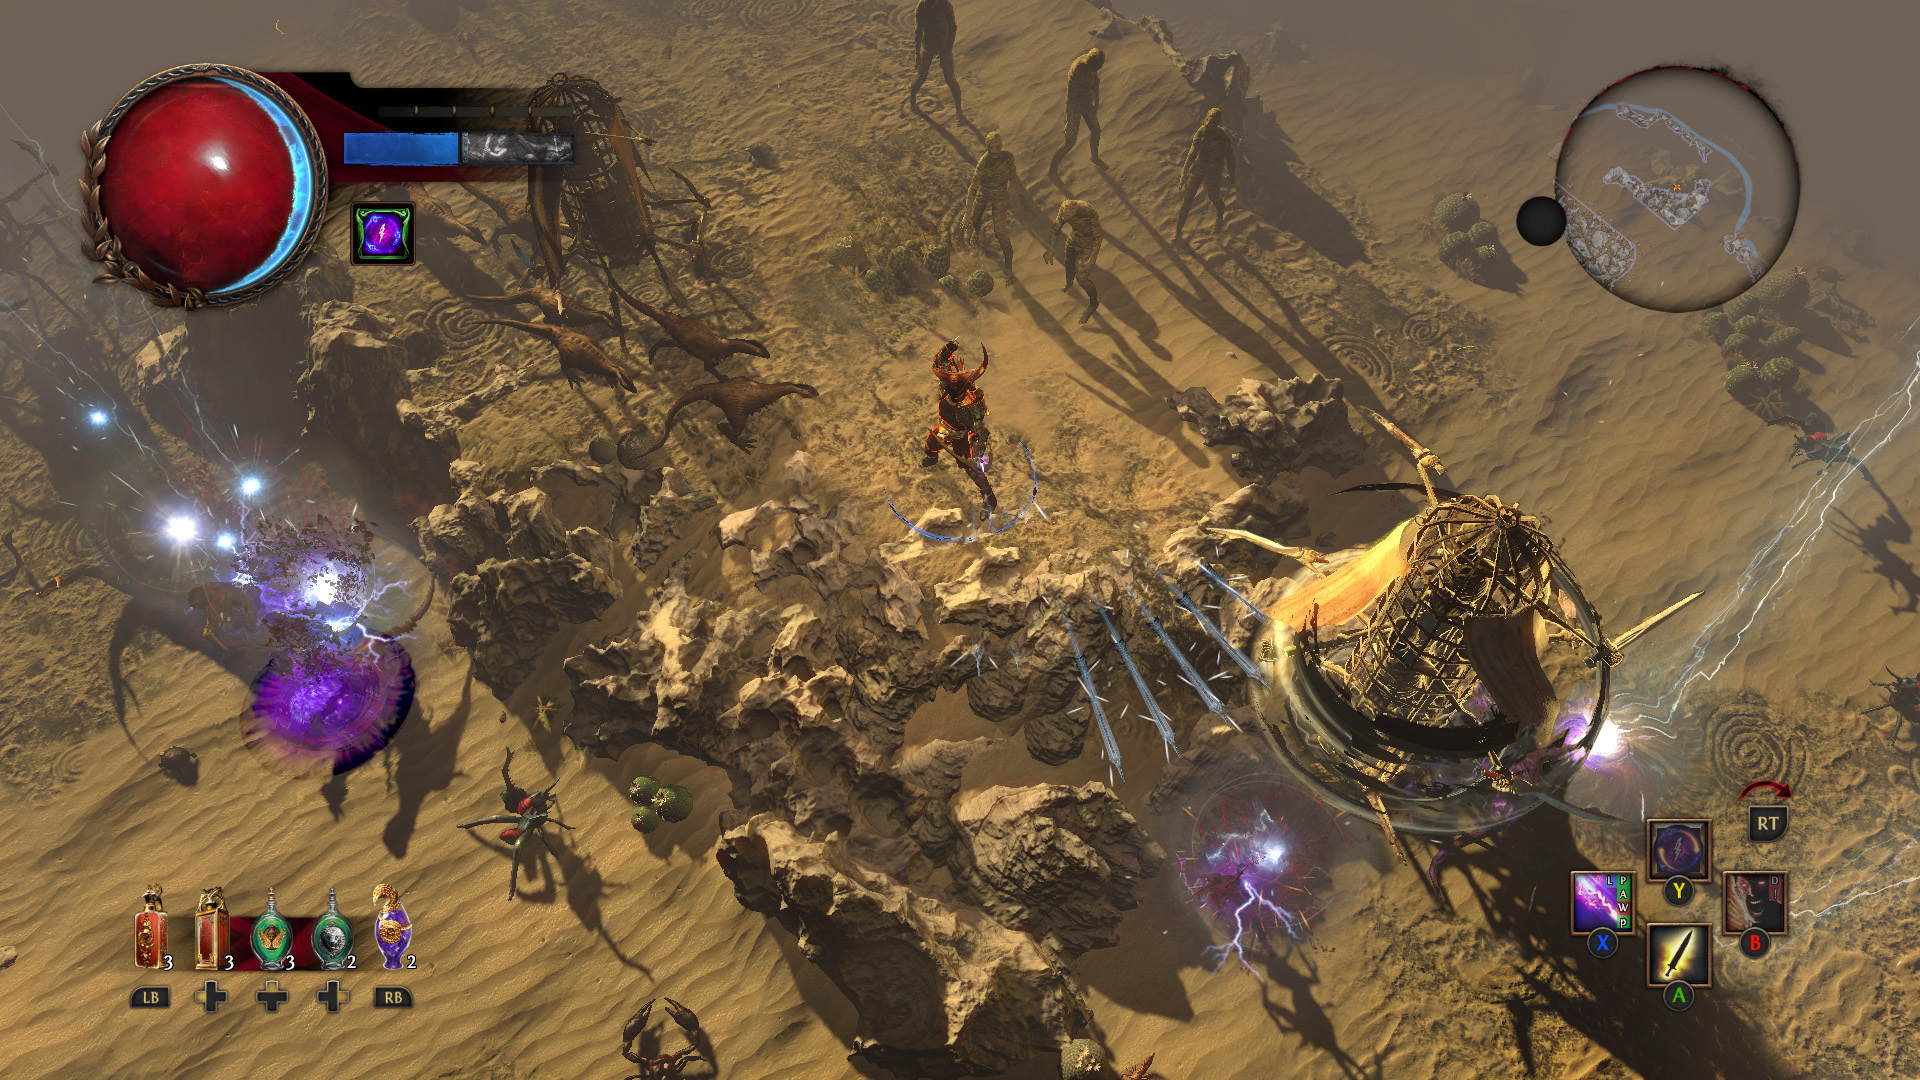 Get your action-RPG fix on Xbox One with the Path of Exile beta screenshot